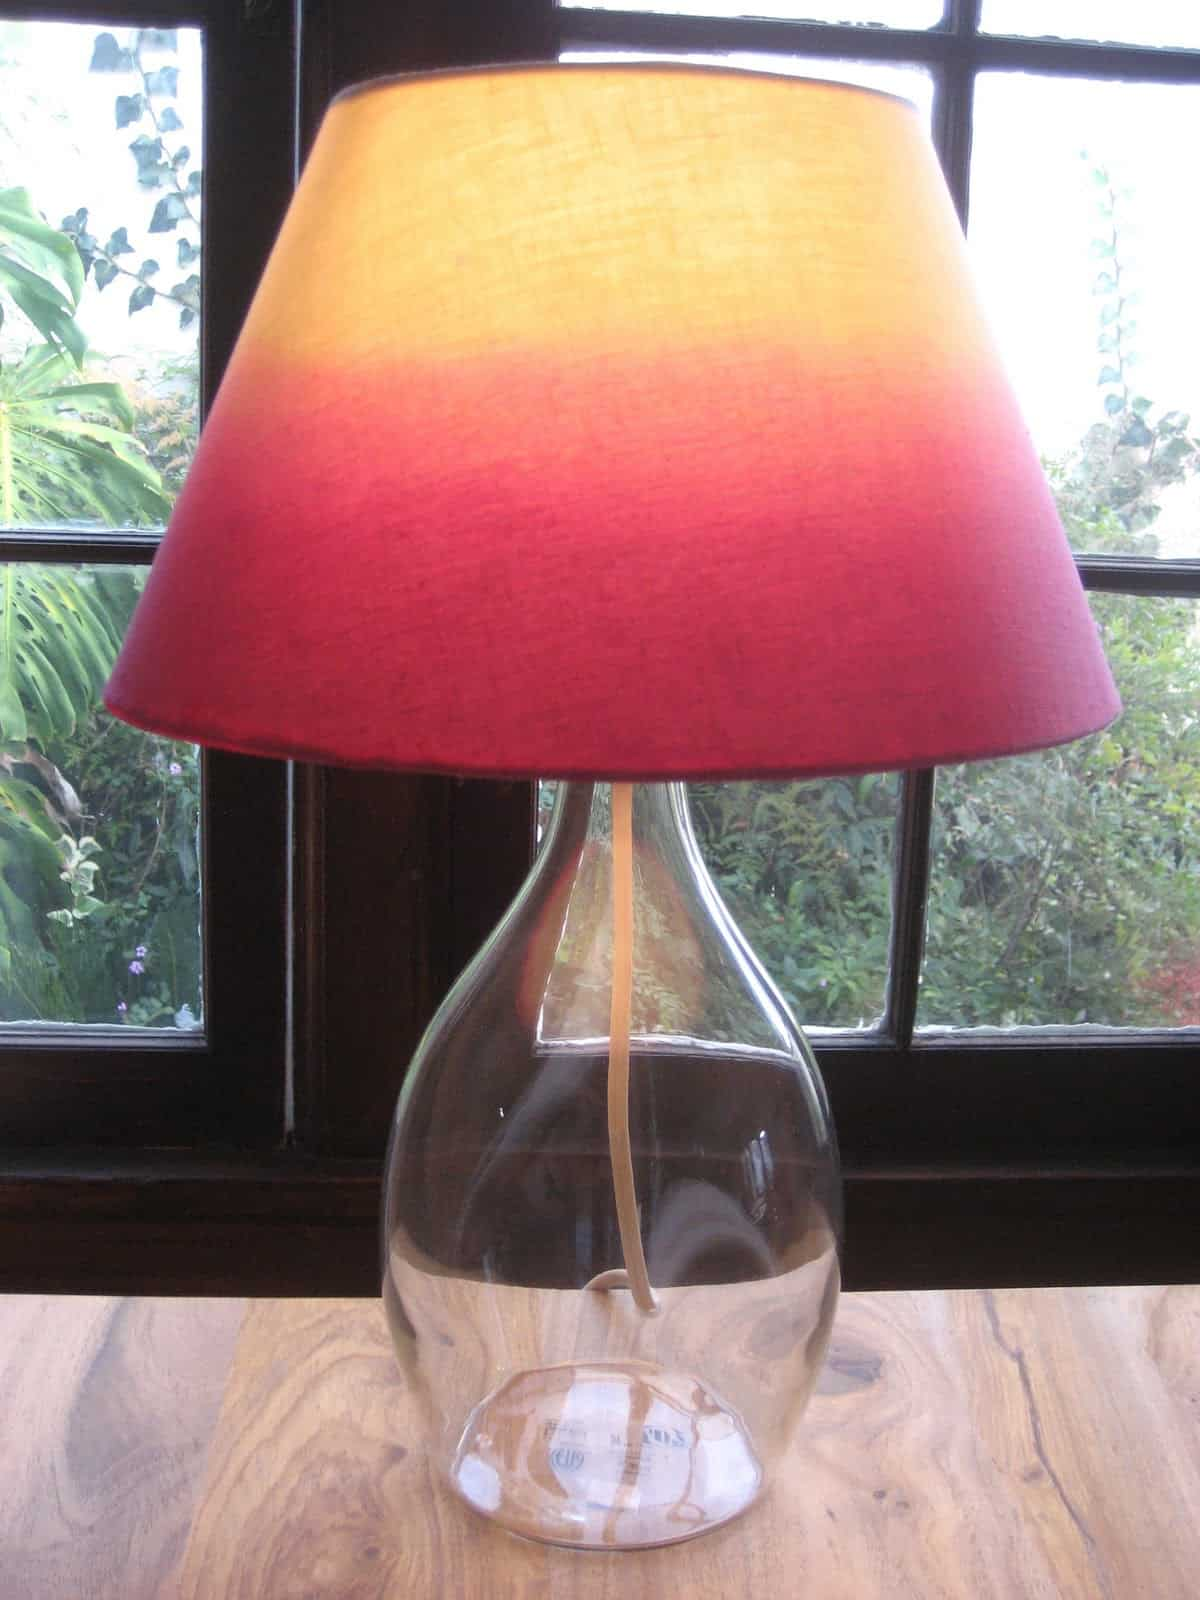 Hair dye ombre lamp shade